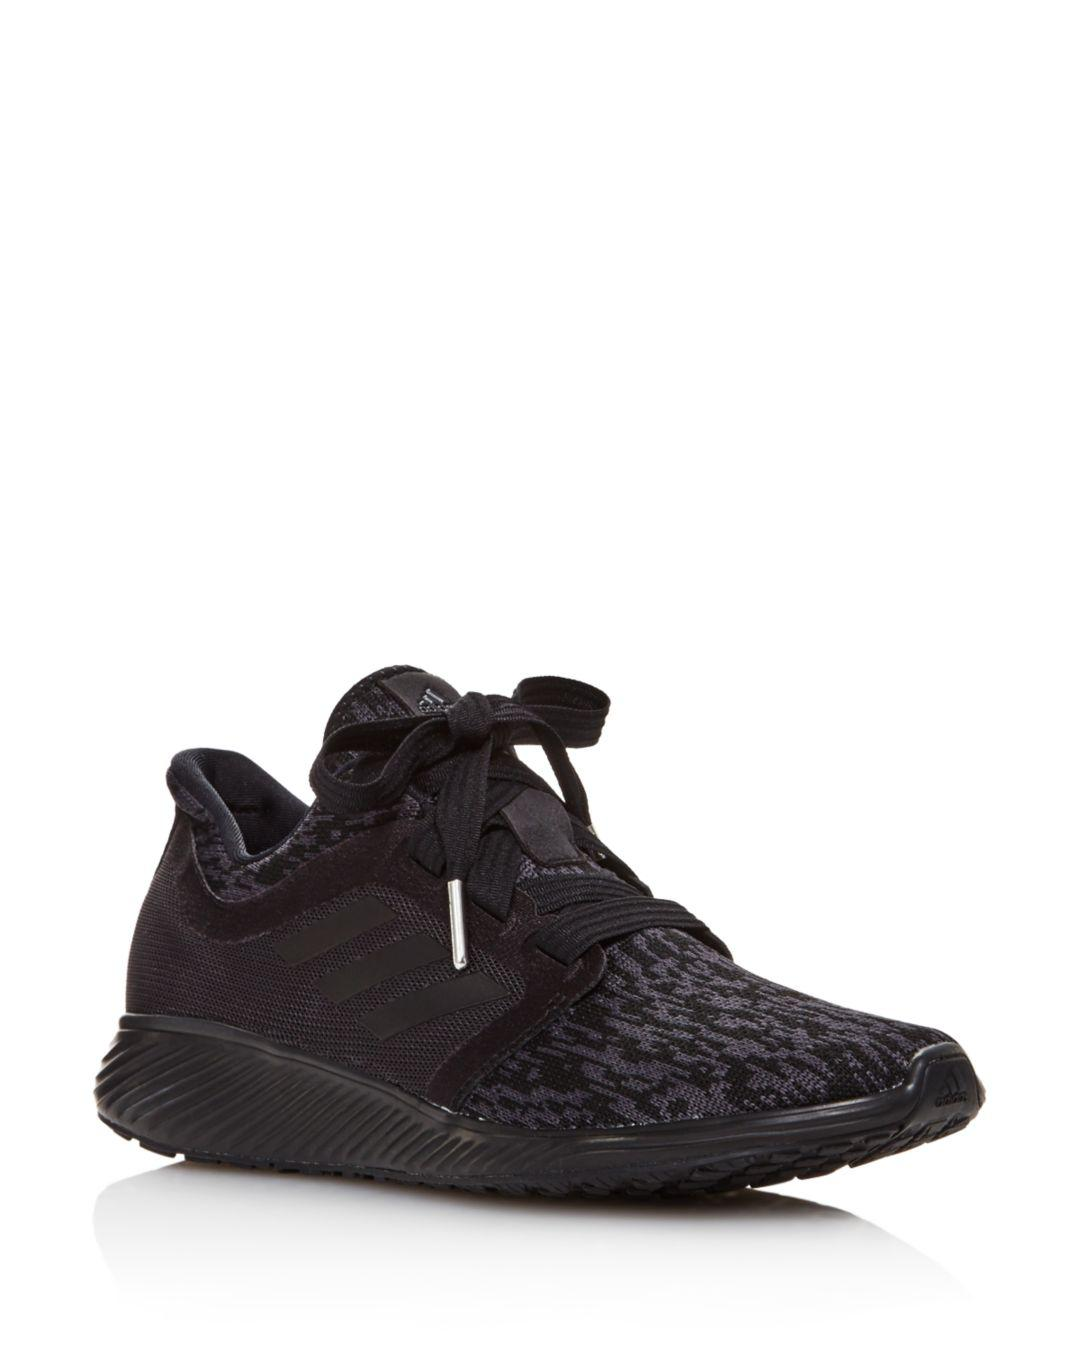 8104e9db357 Lyst - adidas Women s Edge Lux 3 Knit Athletic Sneakers in Black